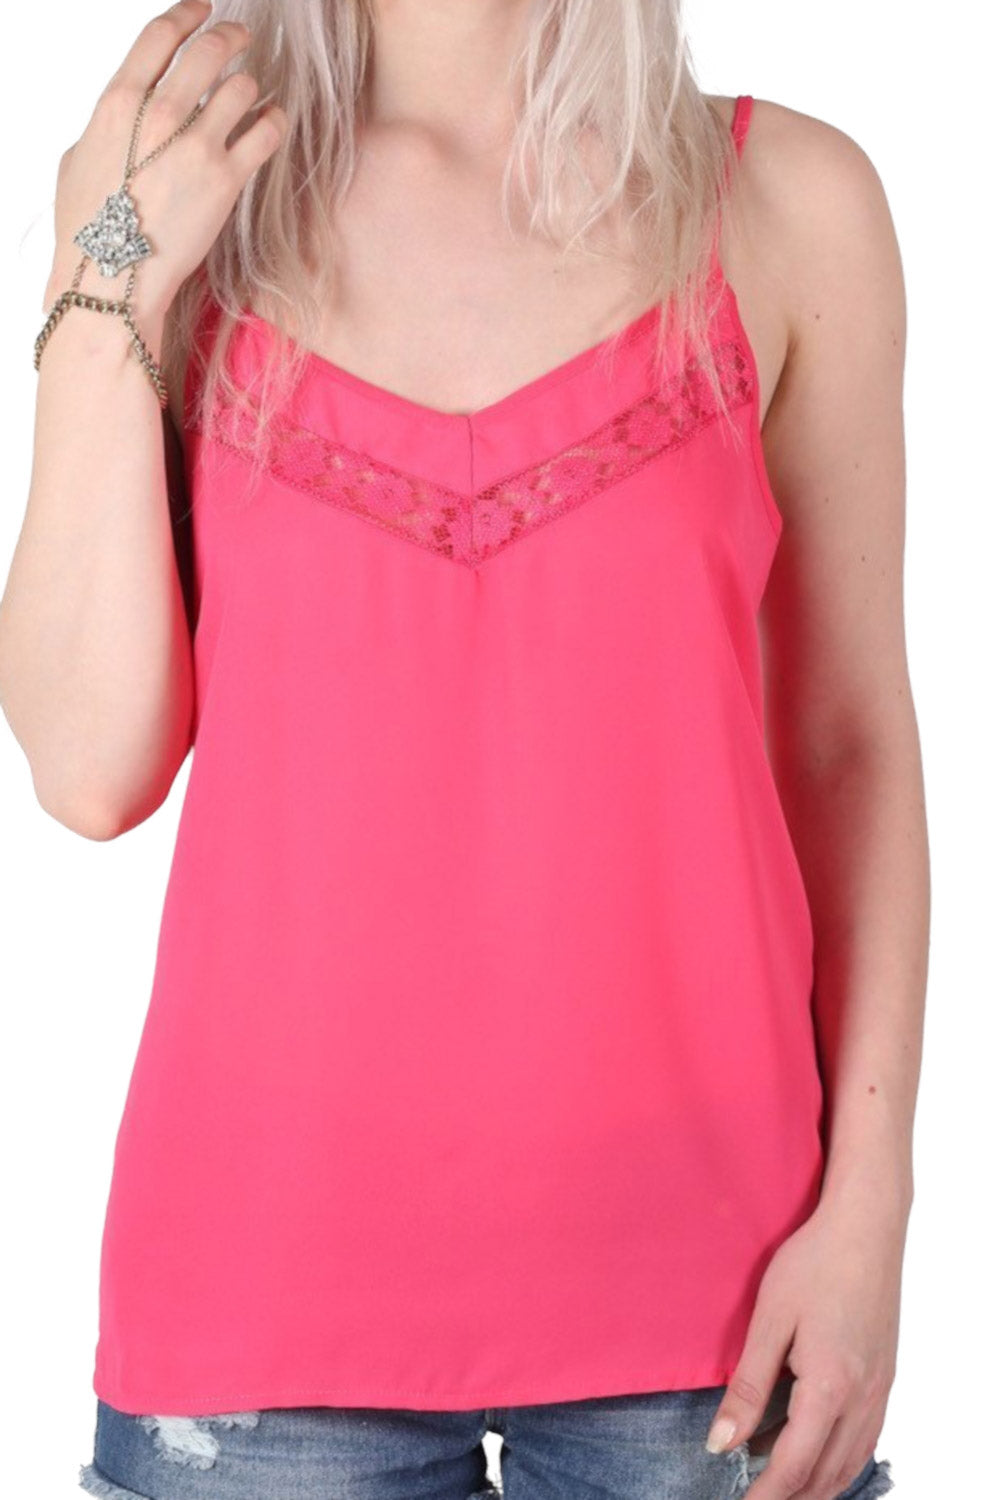 Lace Trim Cami Top in Fuchsia Pink